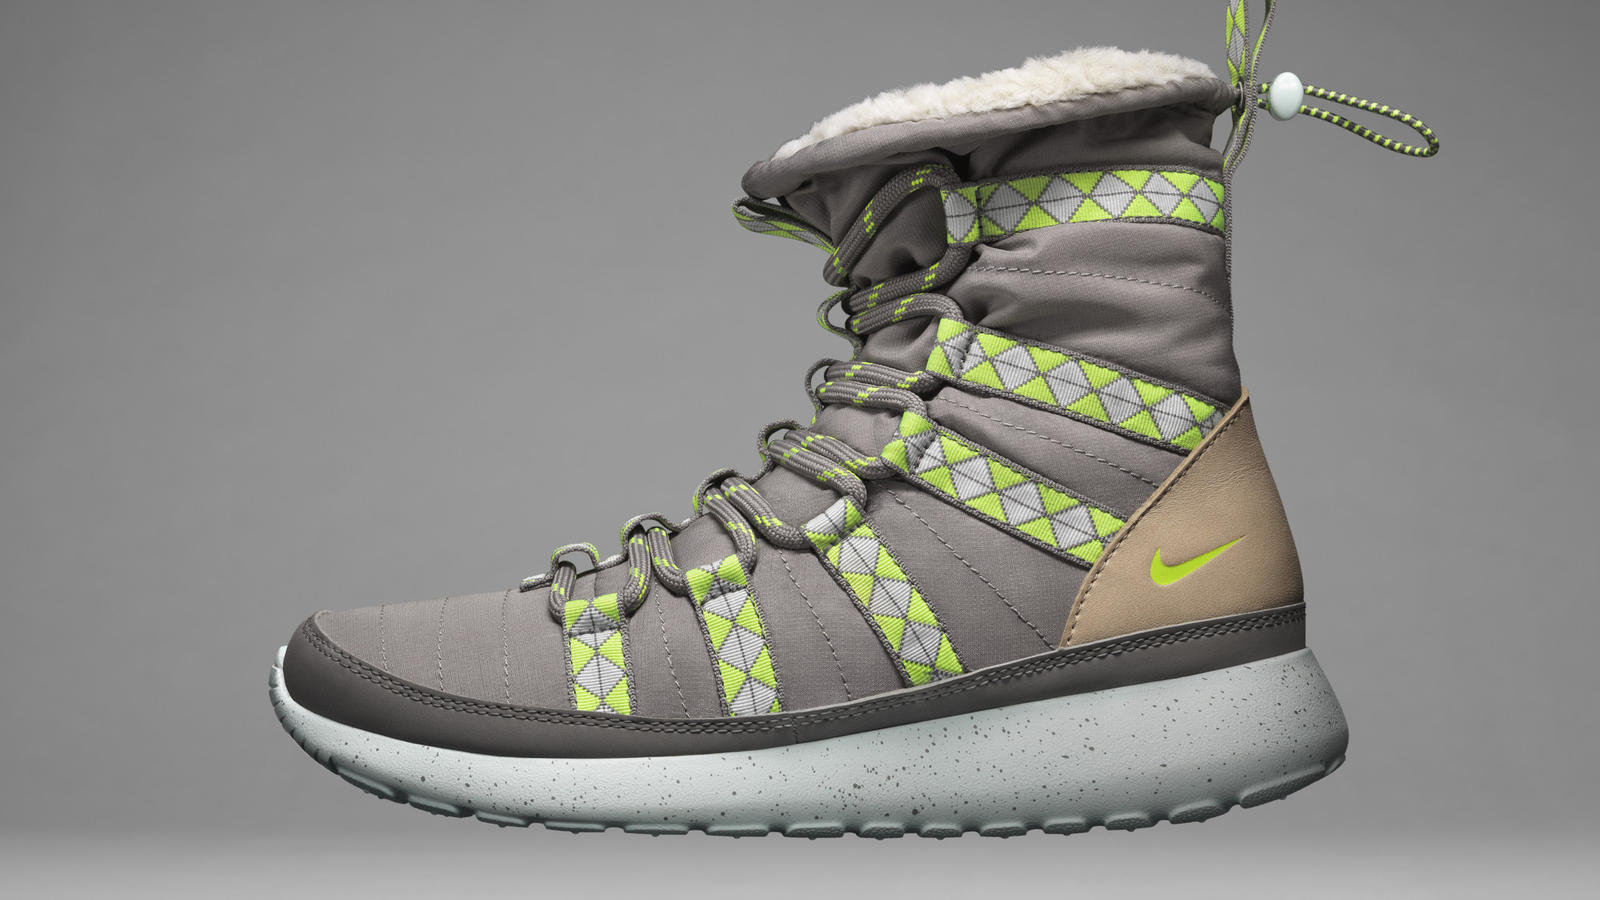 ho13_nsw_sneakerboot_roshe_s_profile_v1